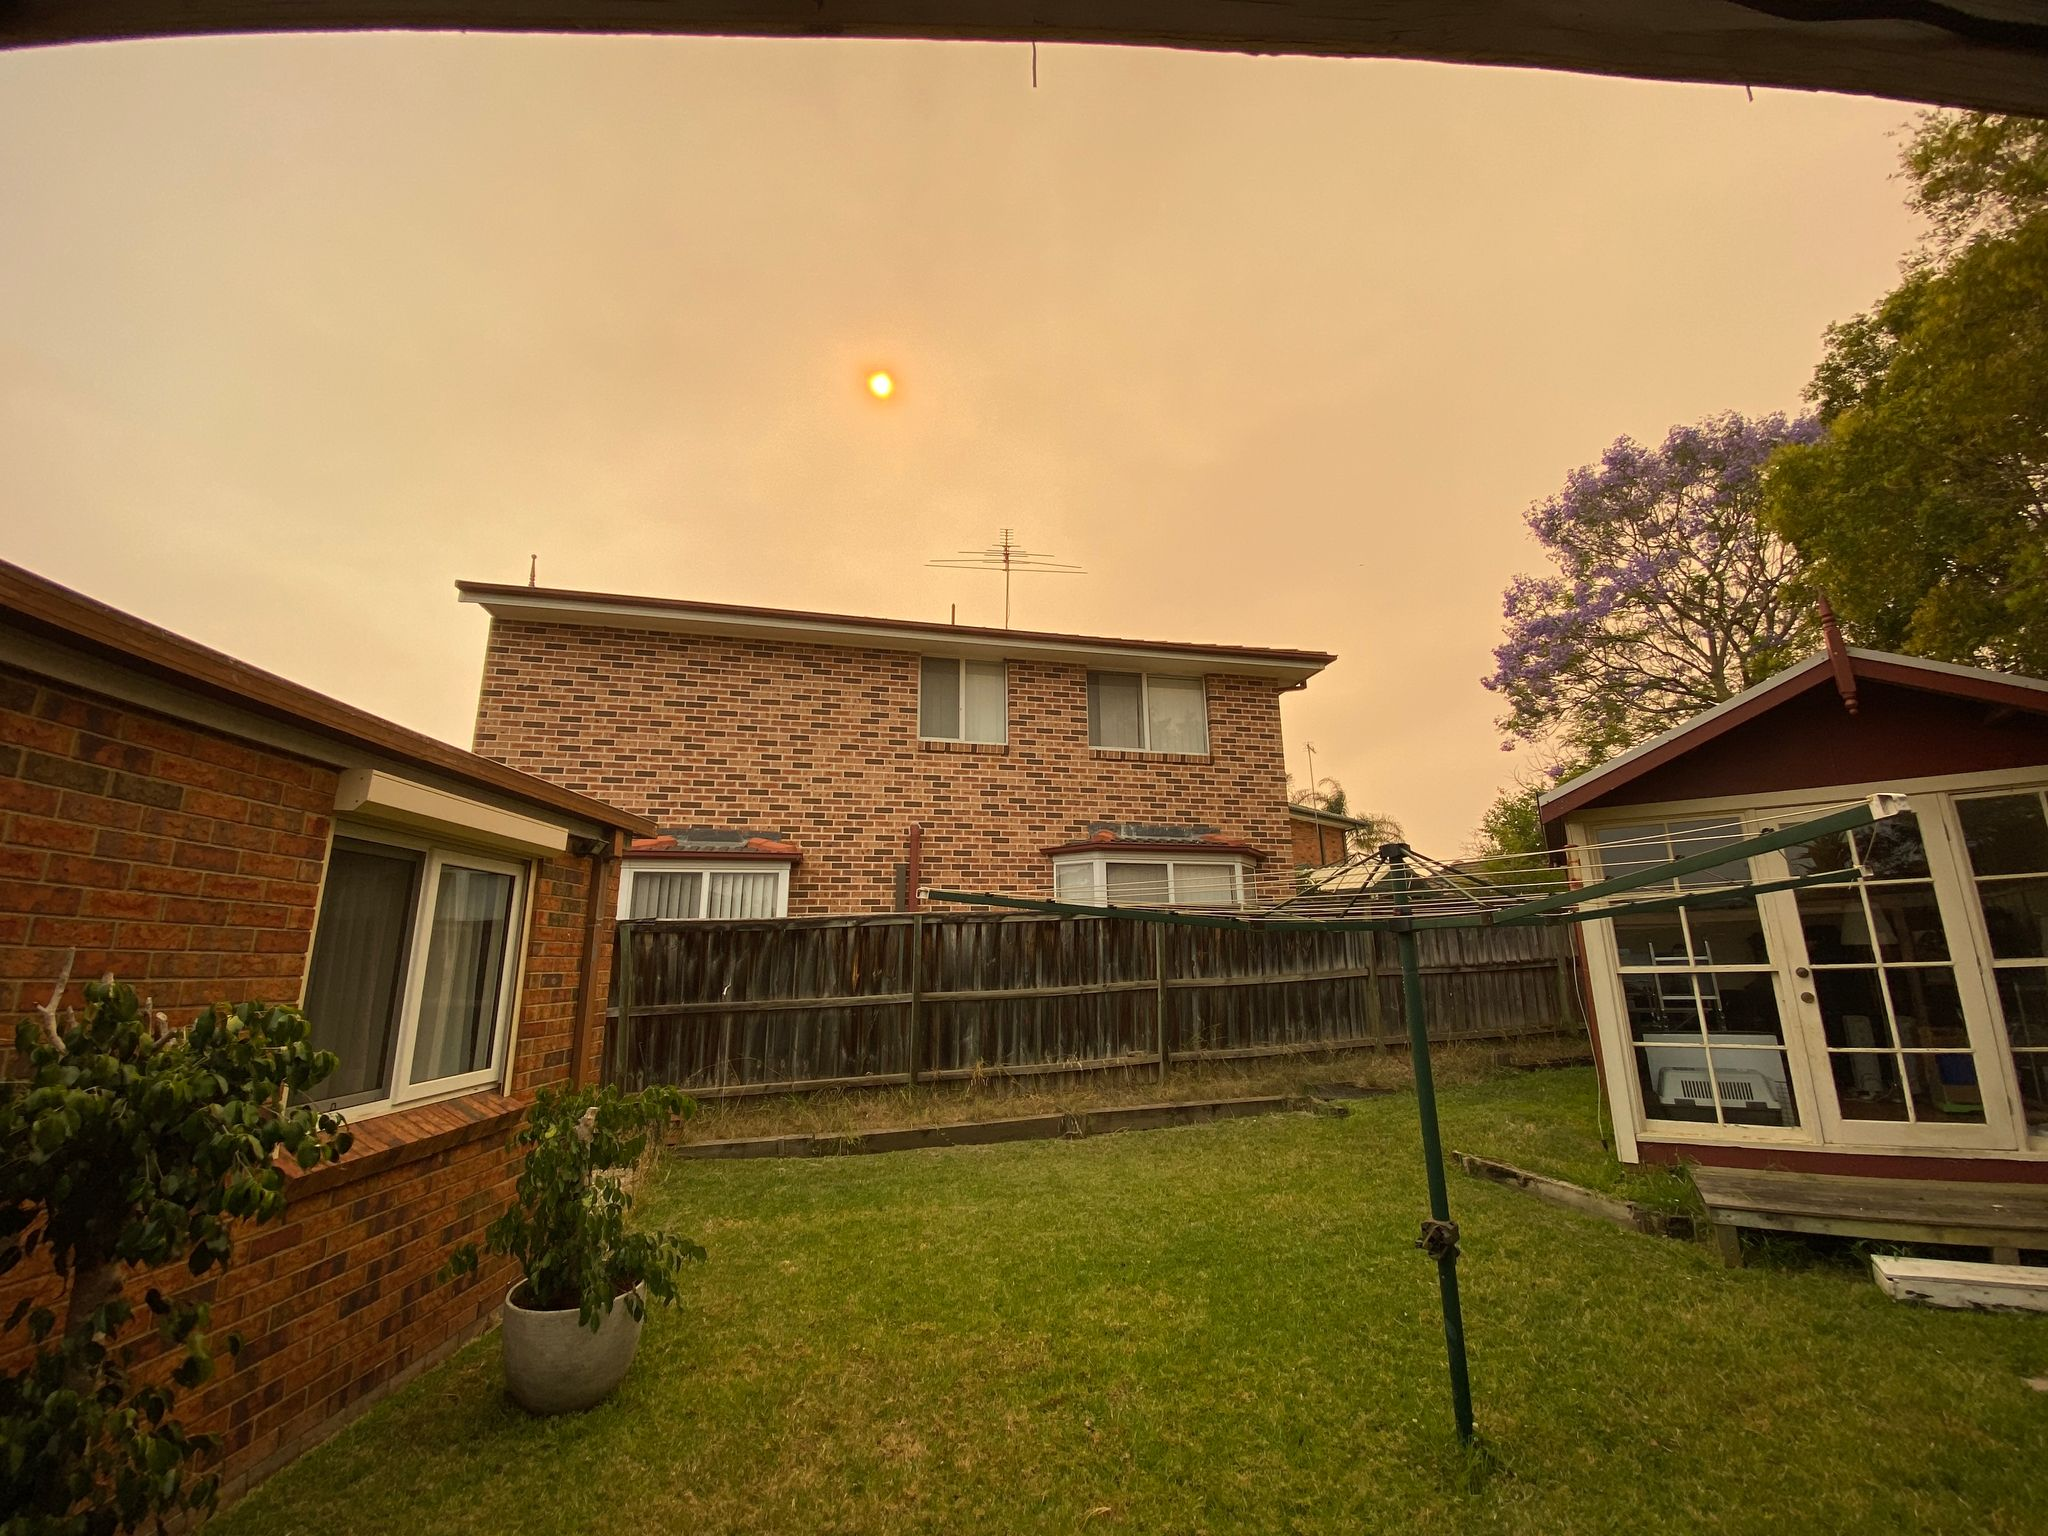 A photo of a suburban backyard, the sky is covered in smoke and the sun is noticeably more orange than usual. The light of the whole scene is much more yellow than normal.